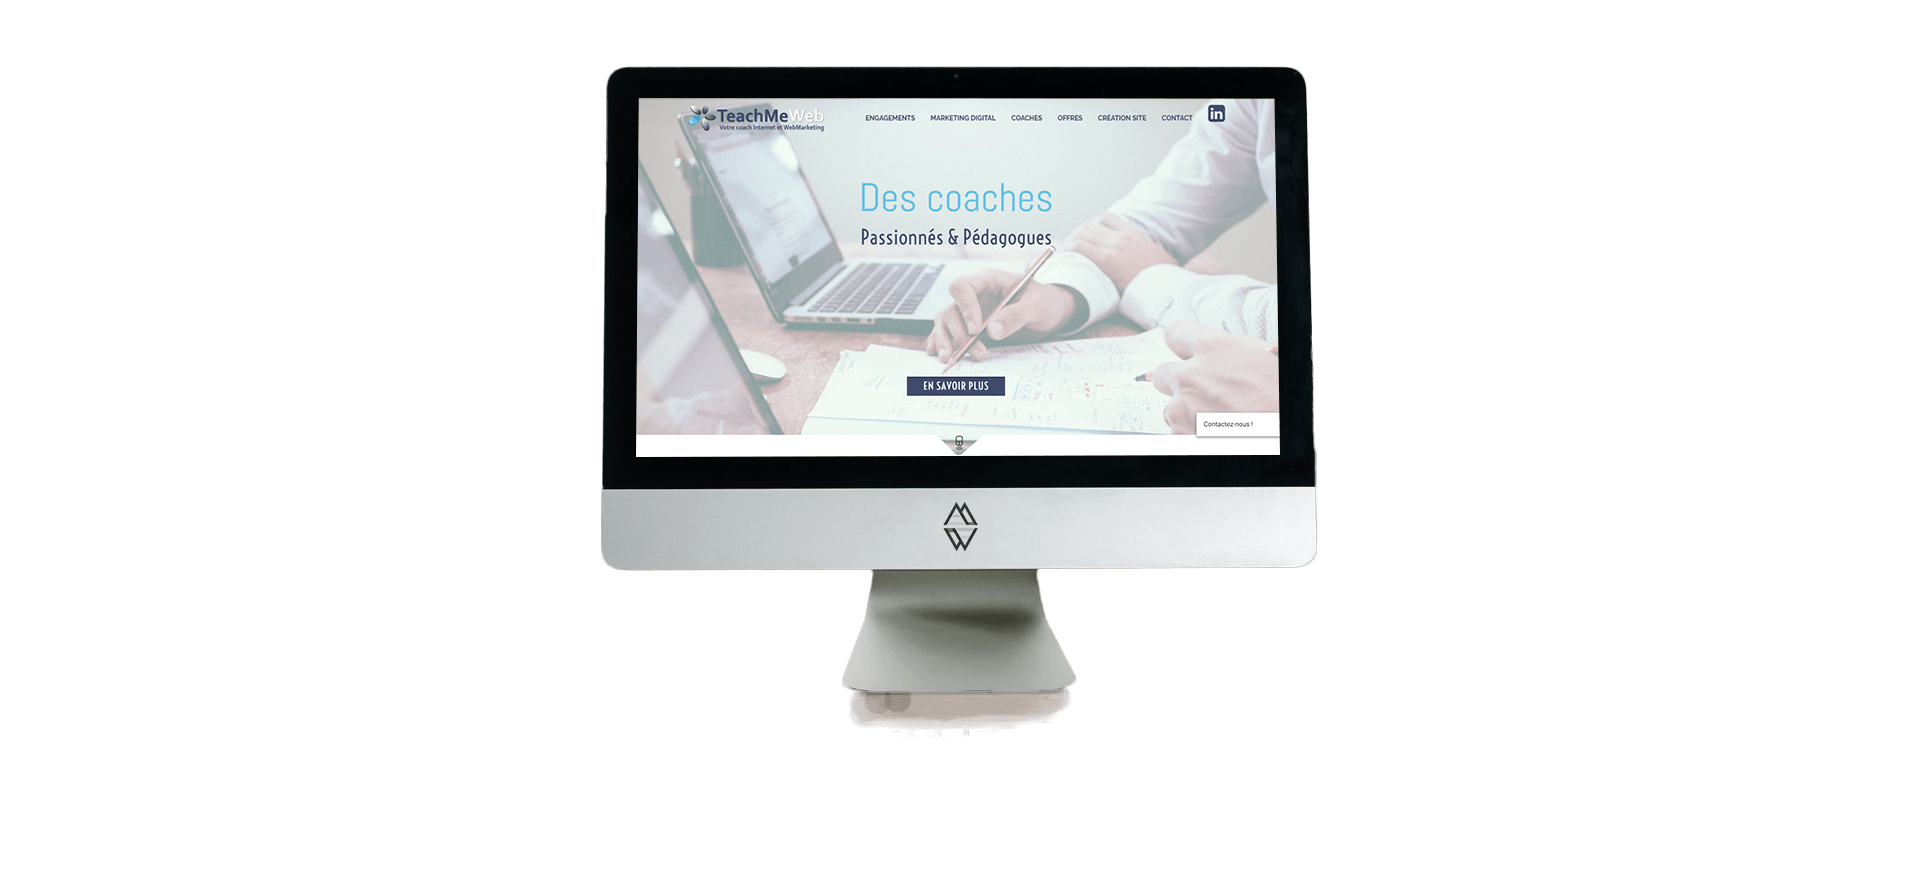 Site Wordpress TeachMeWeb Coaching Marketing Digital